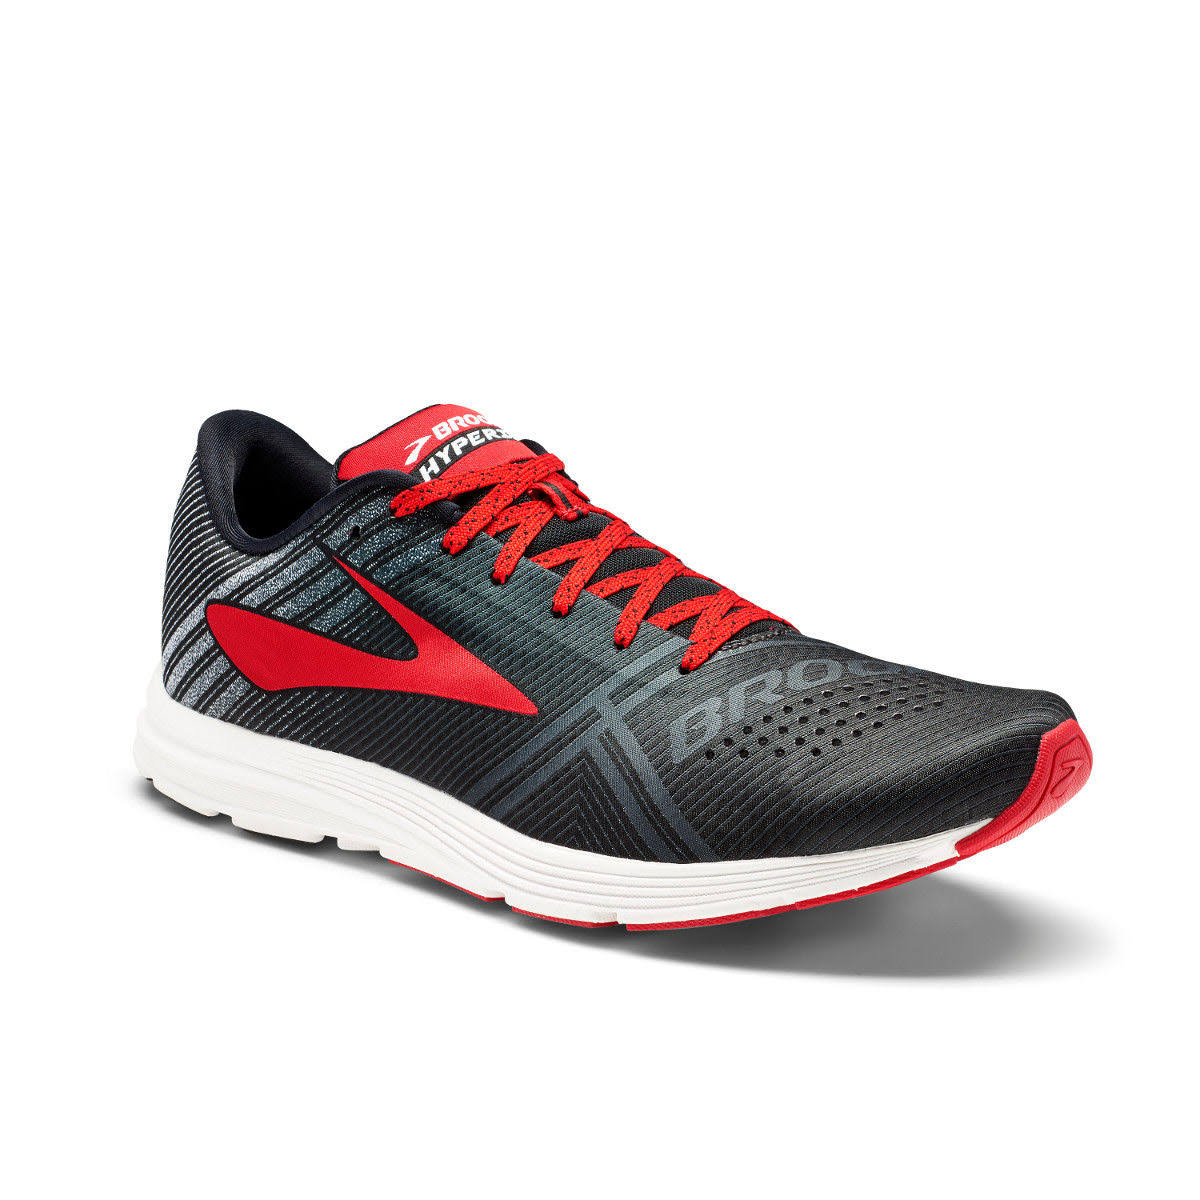 Brooks Men's Hyperion Running Shoes - White/Black/Red